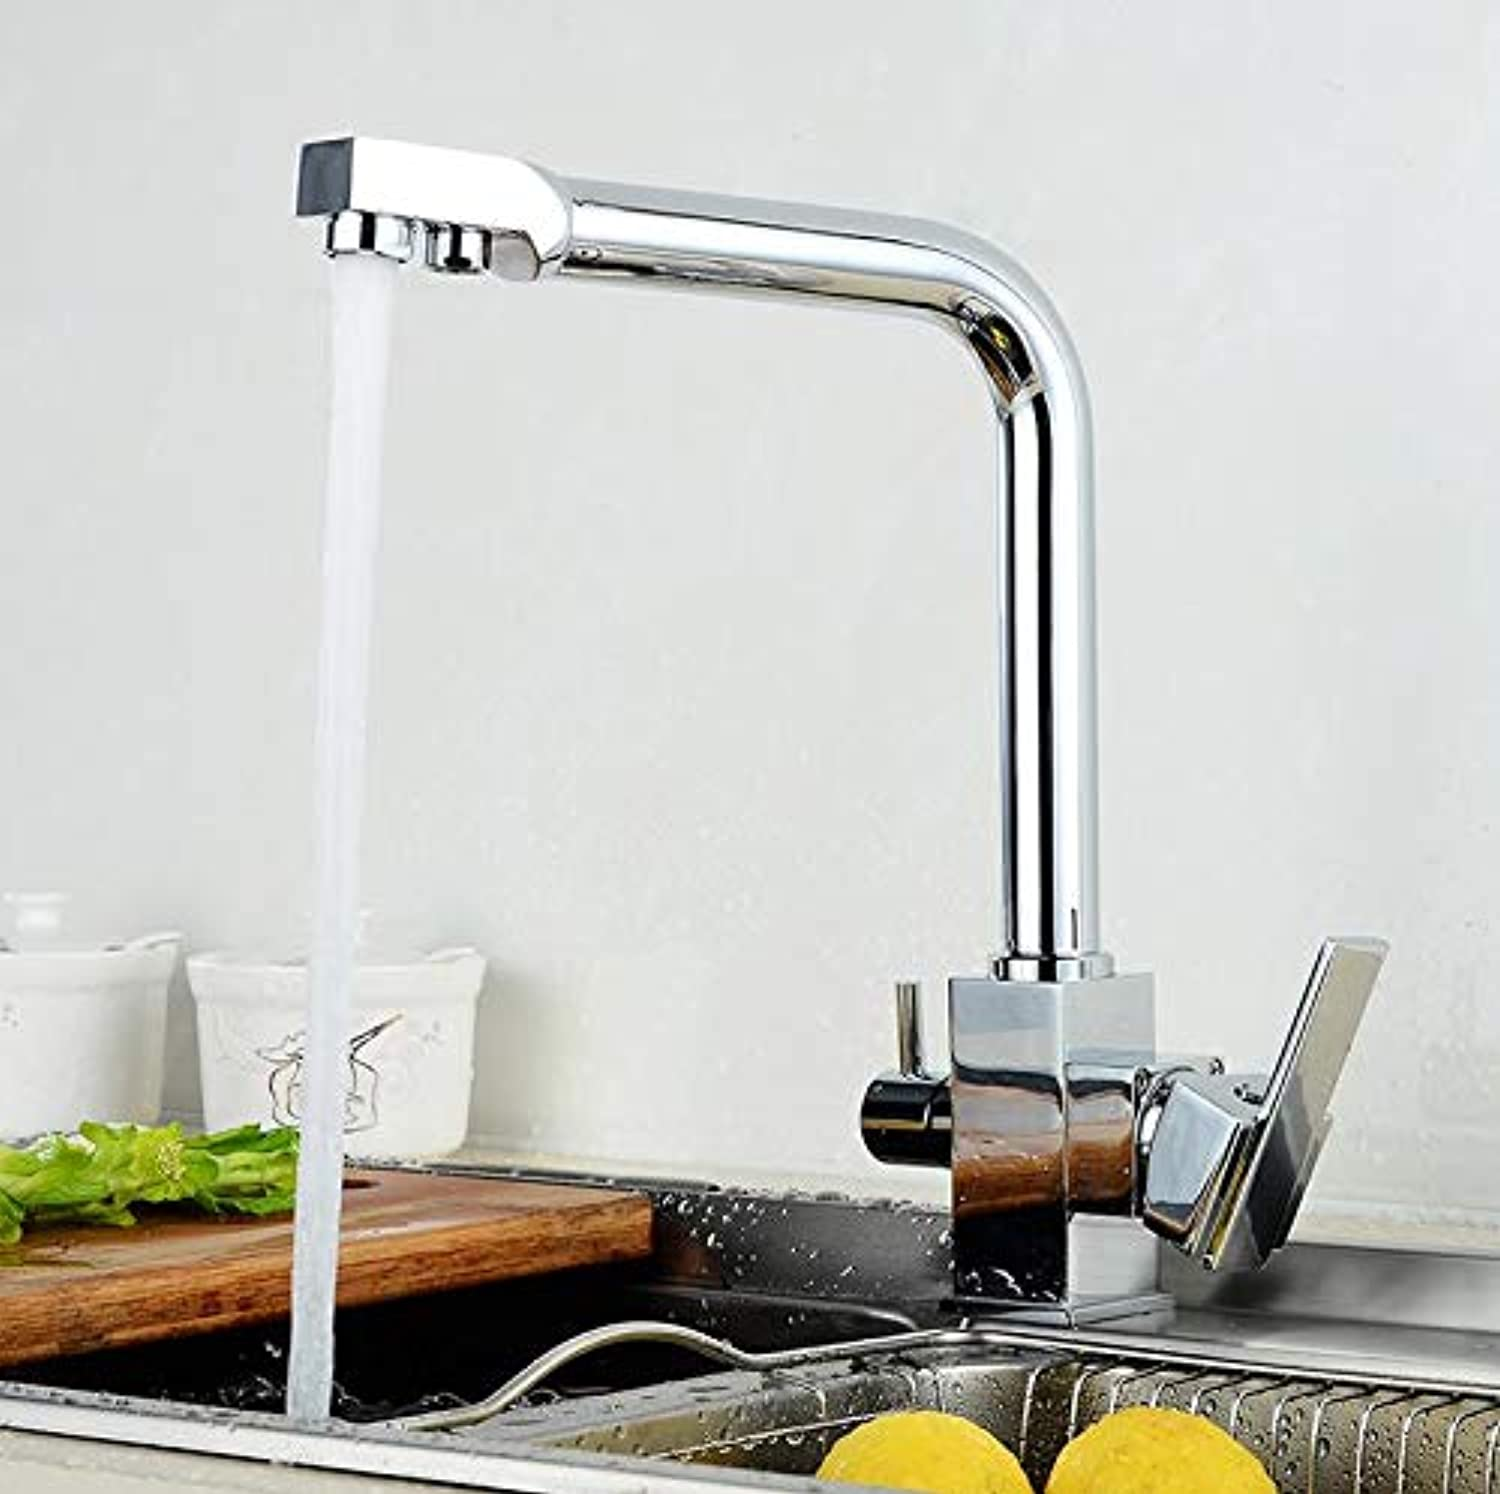 Makej Kitchen Drinking Water Faucet Dual Handle Chrome Kitchen Faucet with Filtered Water Mixer Cold and Hot Faucets